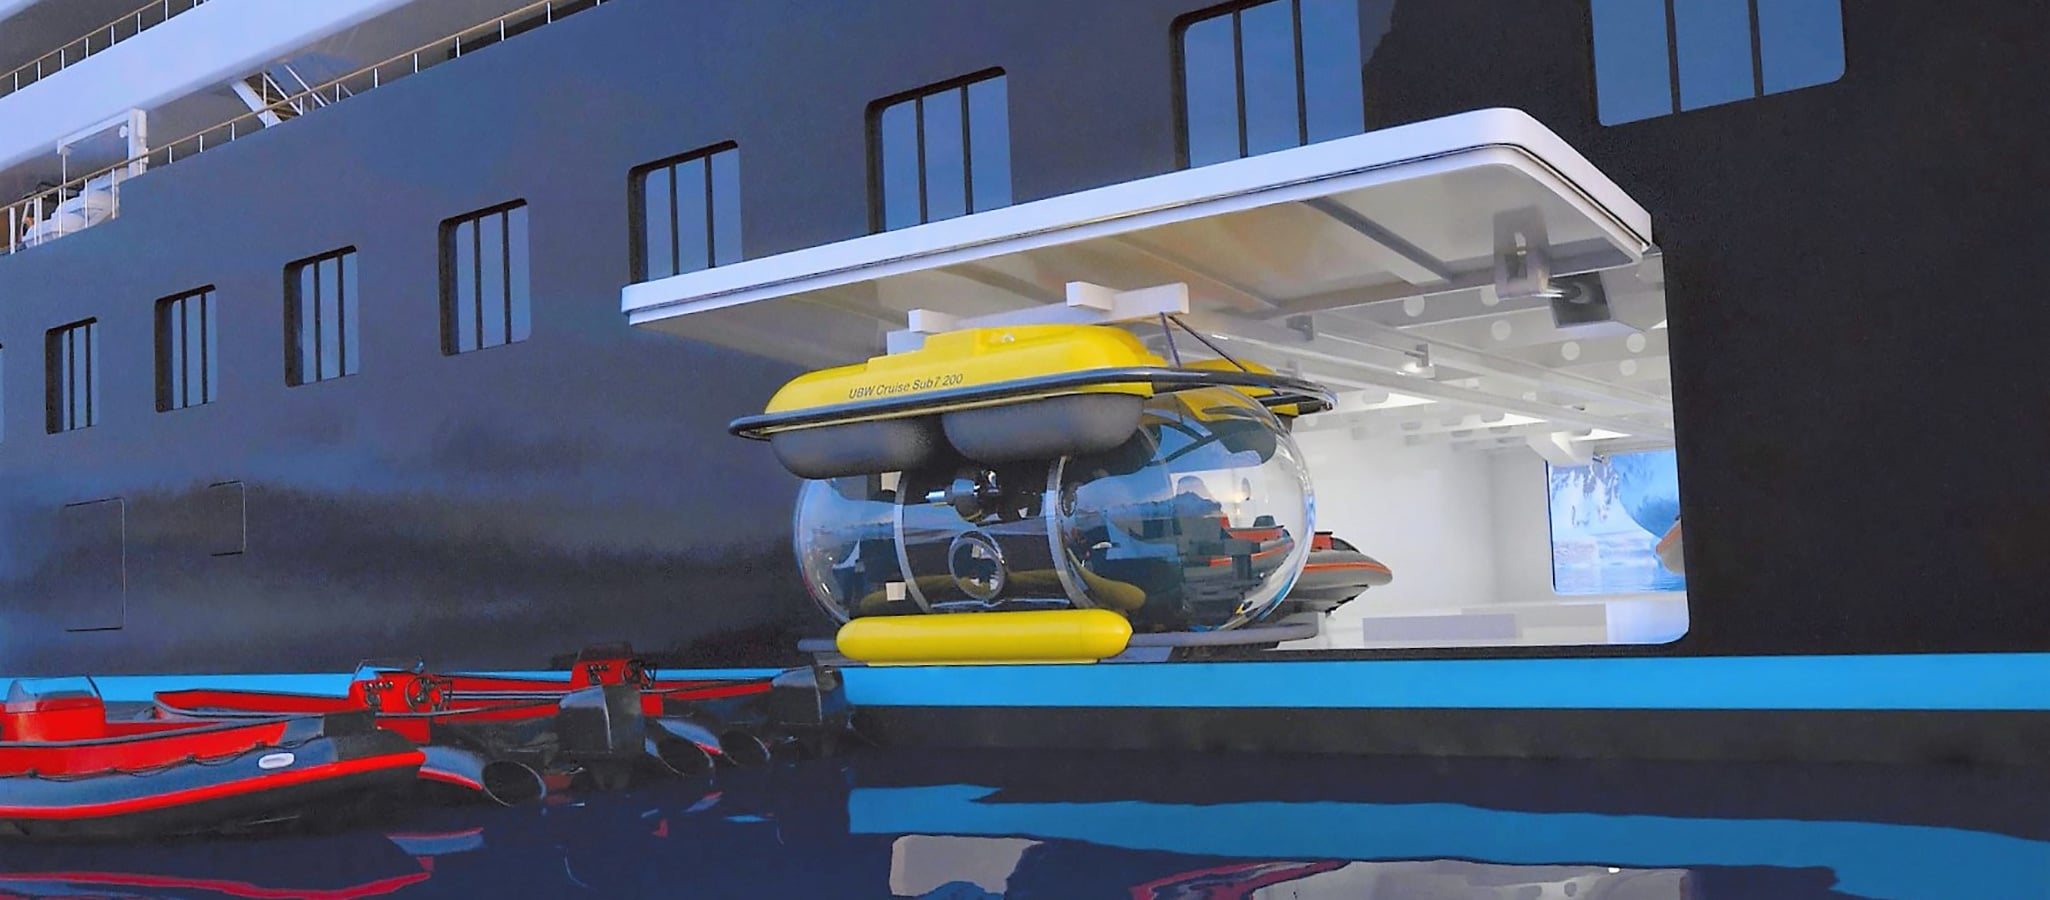 With submersibles, your guest can embark on an adventure to explore the underwater world.